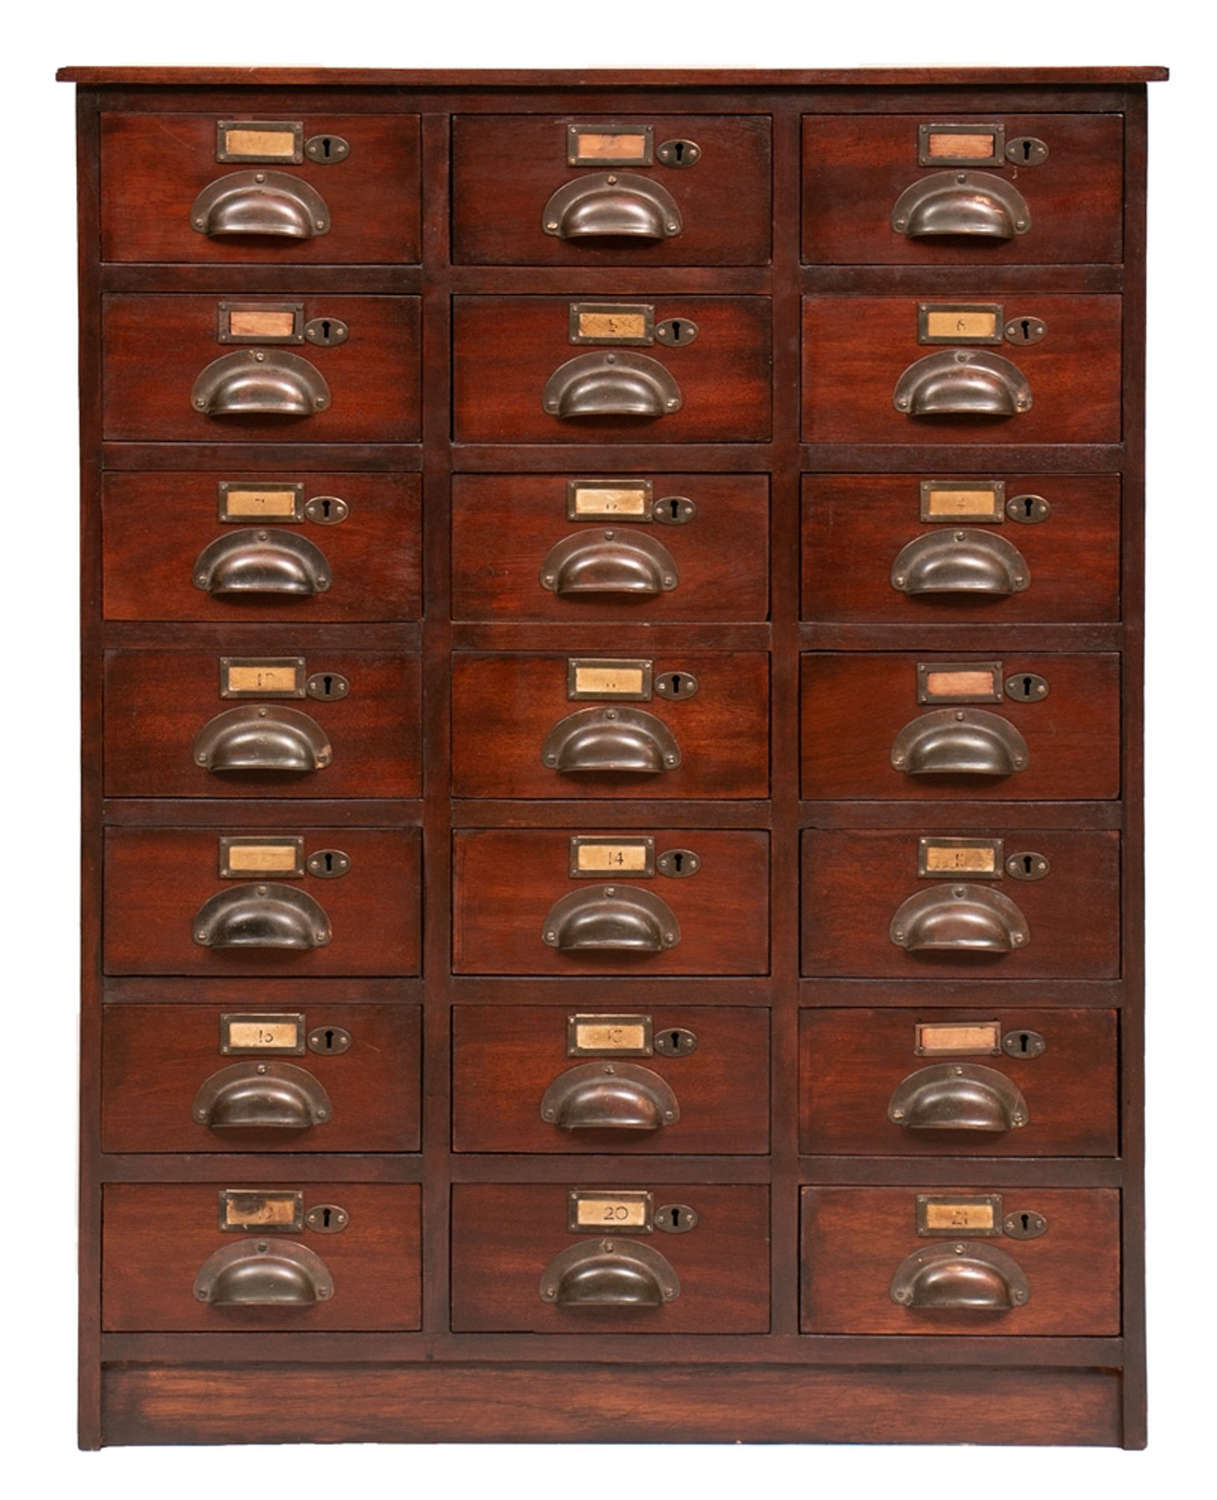 Victorian Mahogany Bank of Drawers